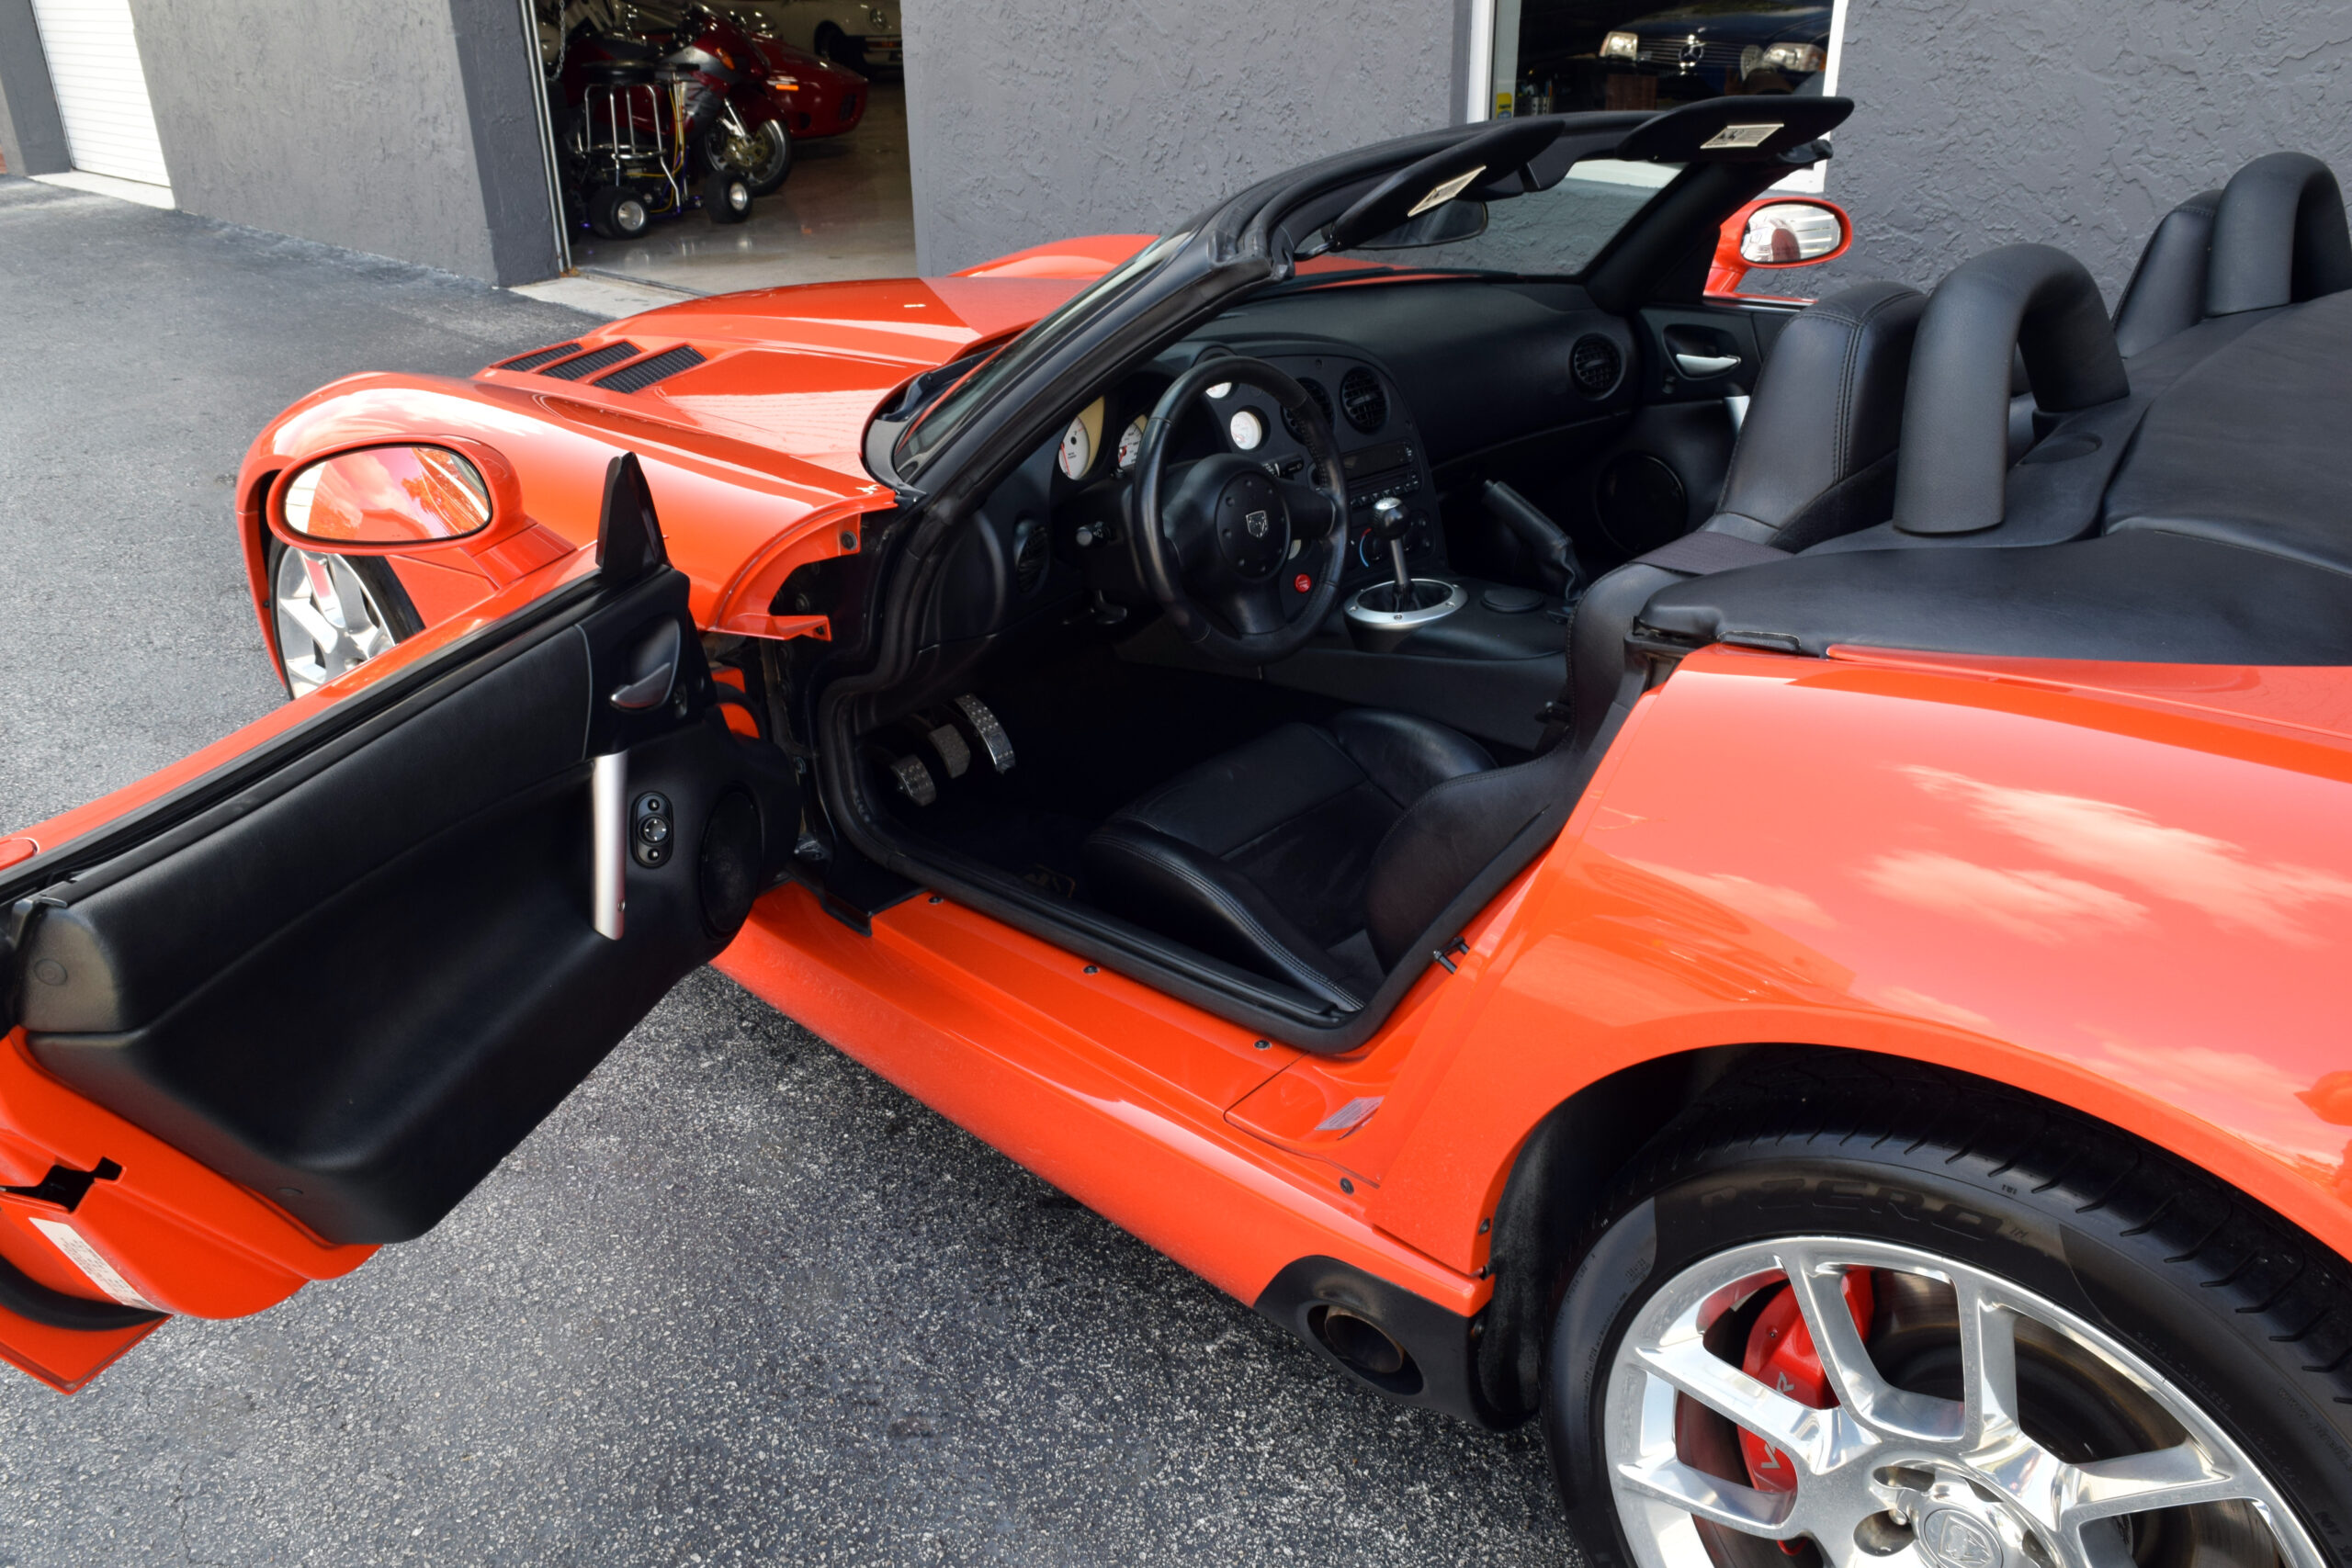 2008 Viper SRT10 Roadster, rare Viper Very Orange Pearl, only 29K miles, amazing original condition.